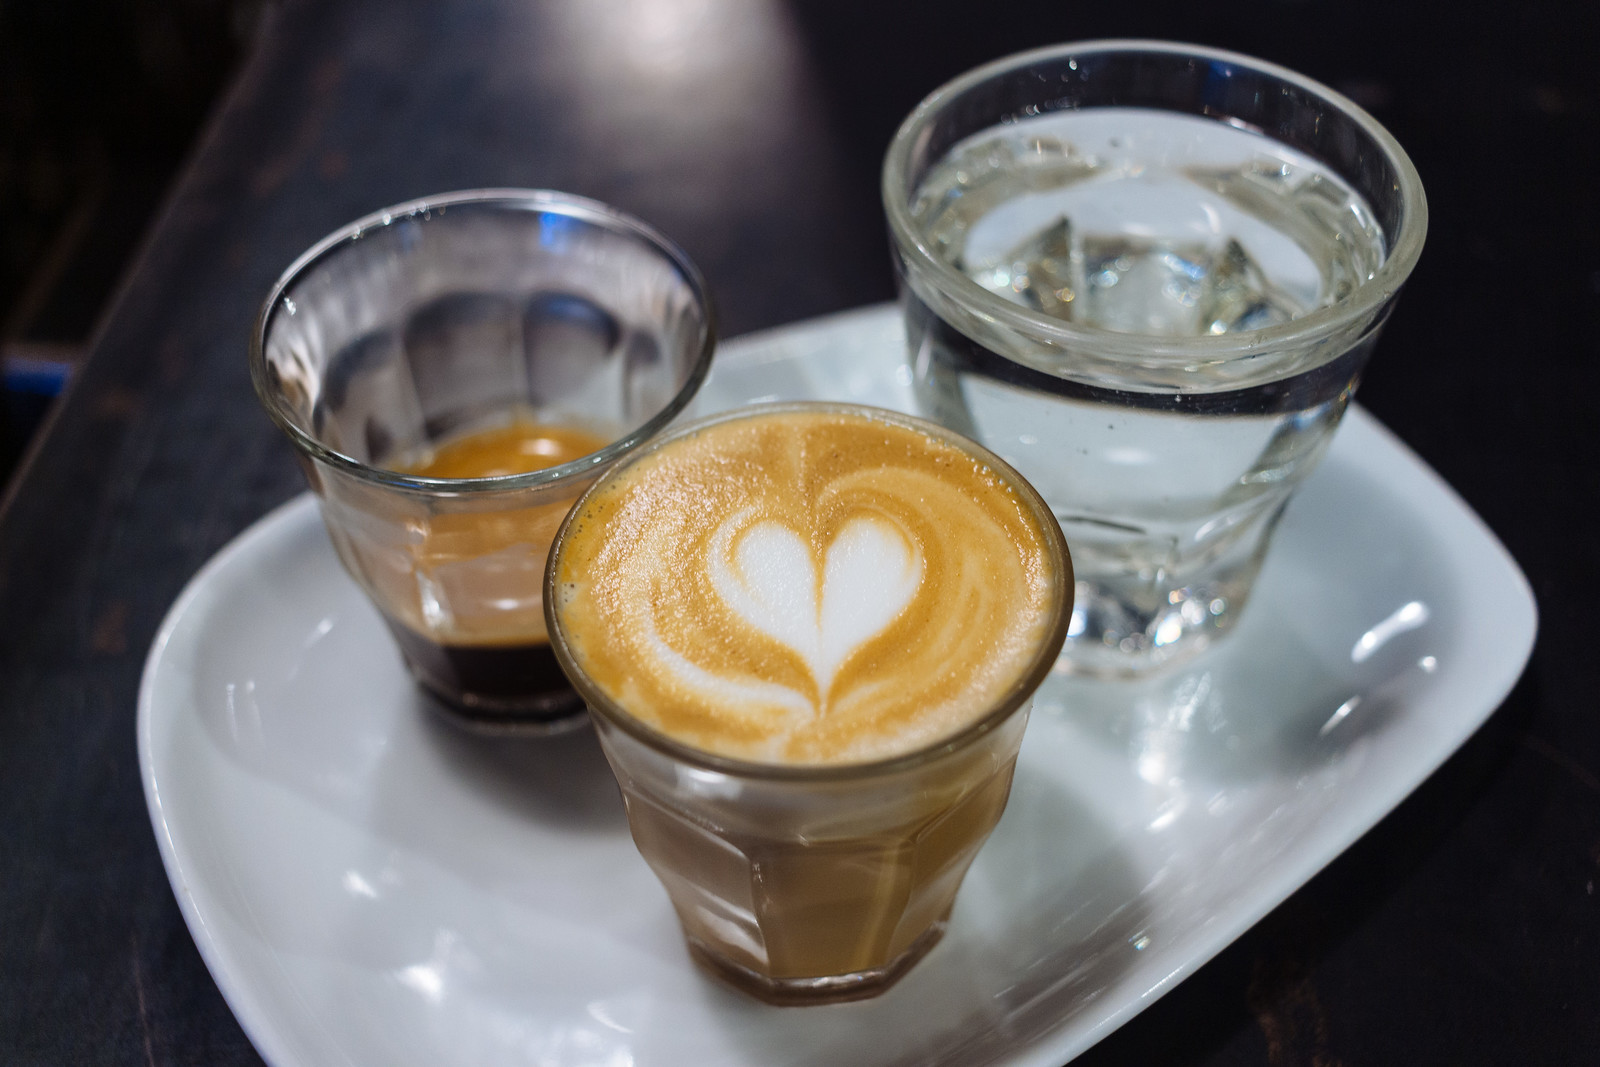 Small glasses of pure espresso, espresso and steamed milk, and sparking water